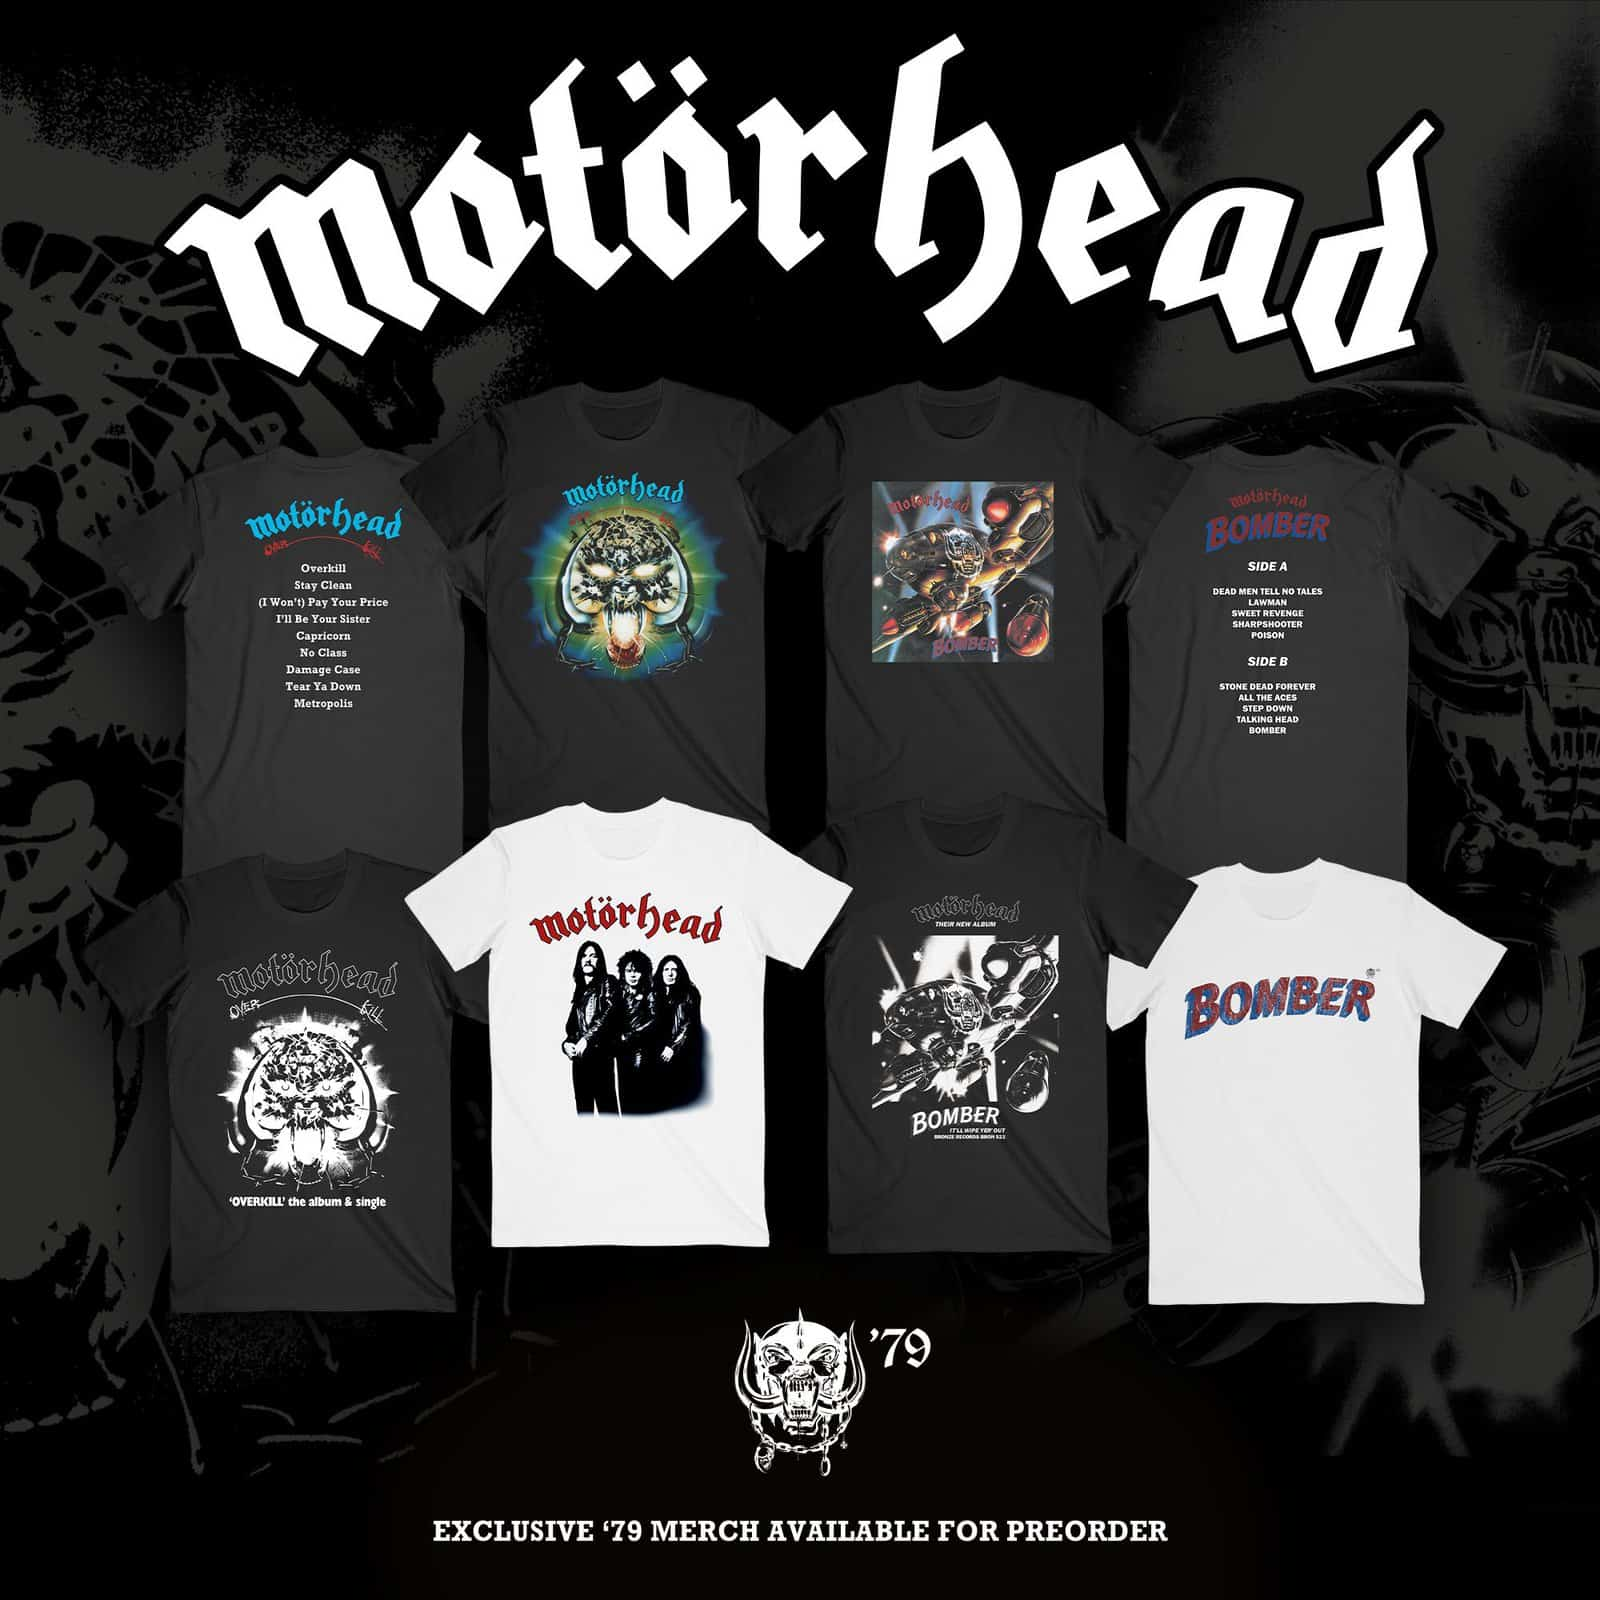 Motorhead I Saw You Sob 2012 Tour Black T Shirt New Official Small S